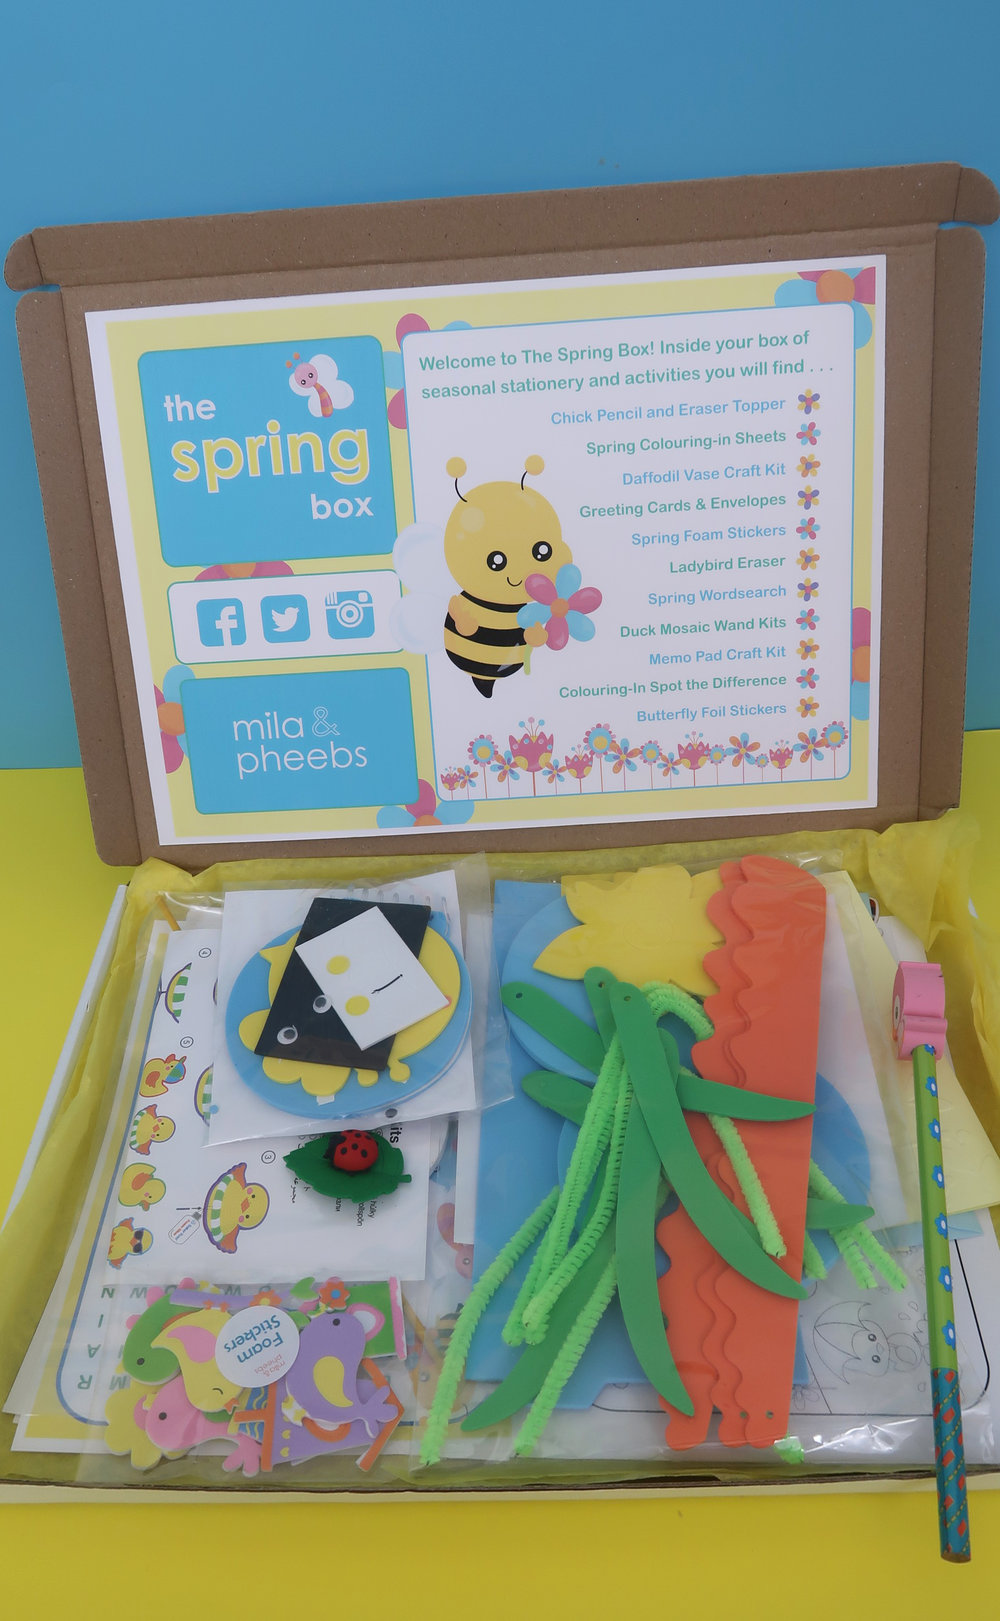 mila and pheebs spring box